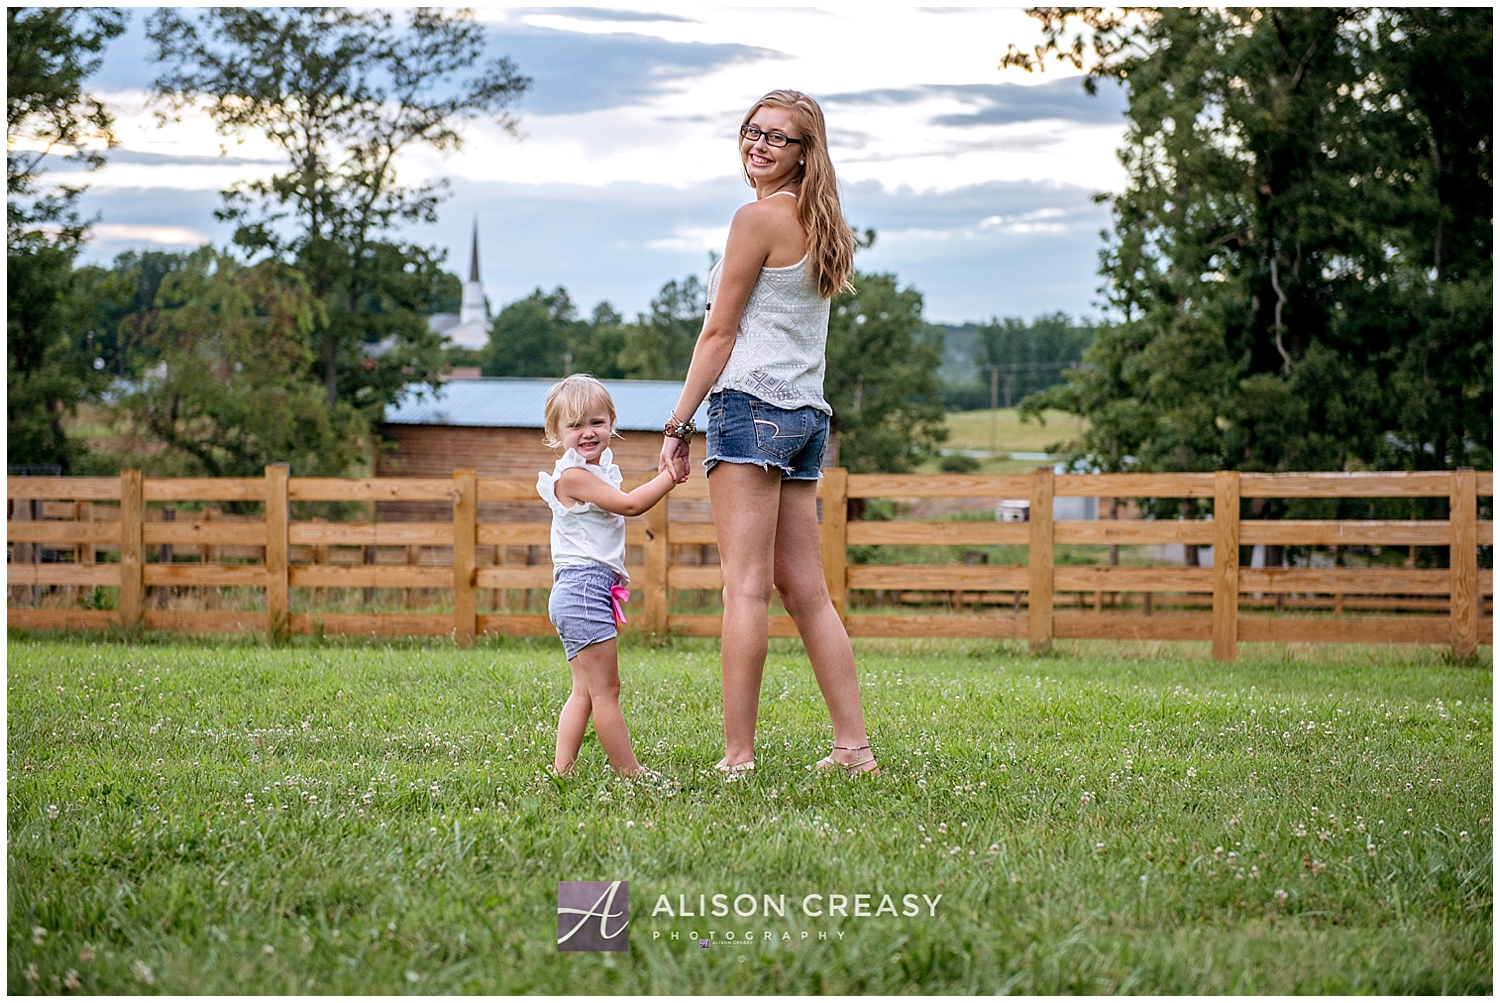 Alison-Creasy-Photography-Lynchburg-VA-Photographer_0725.jpg